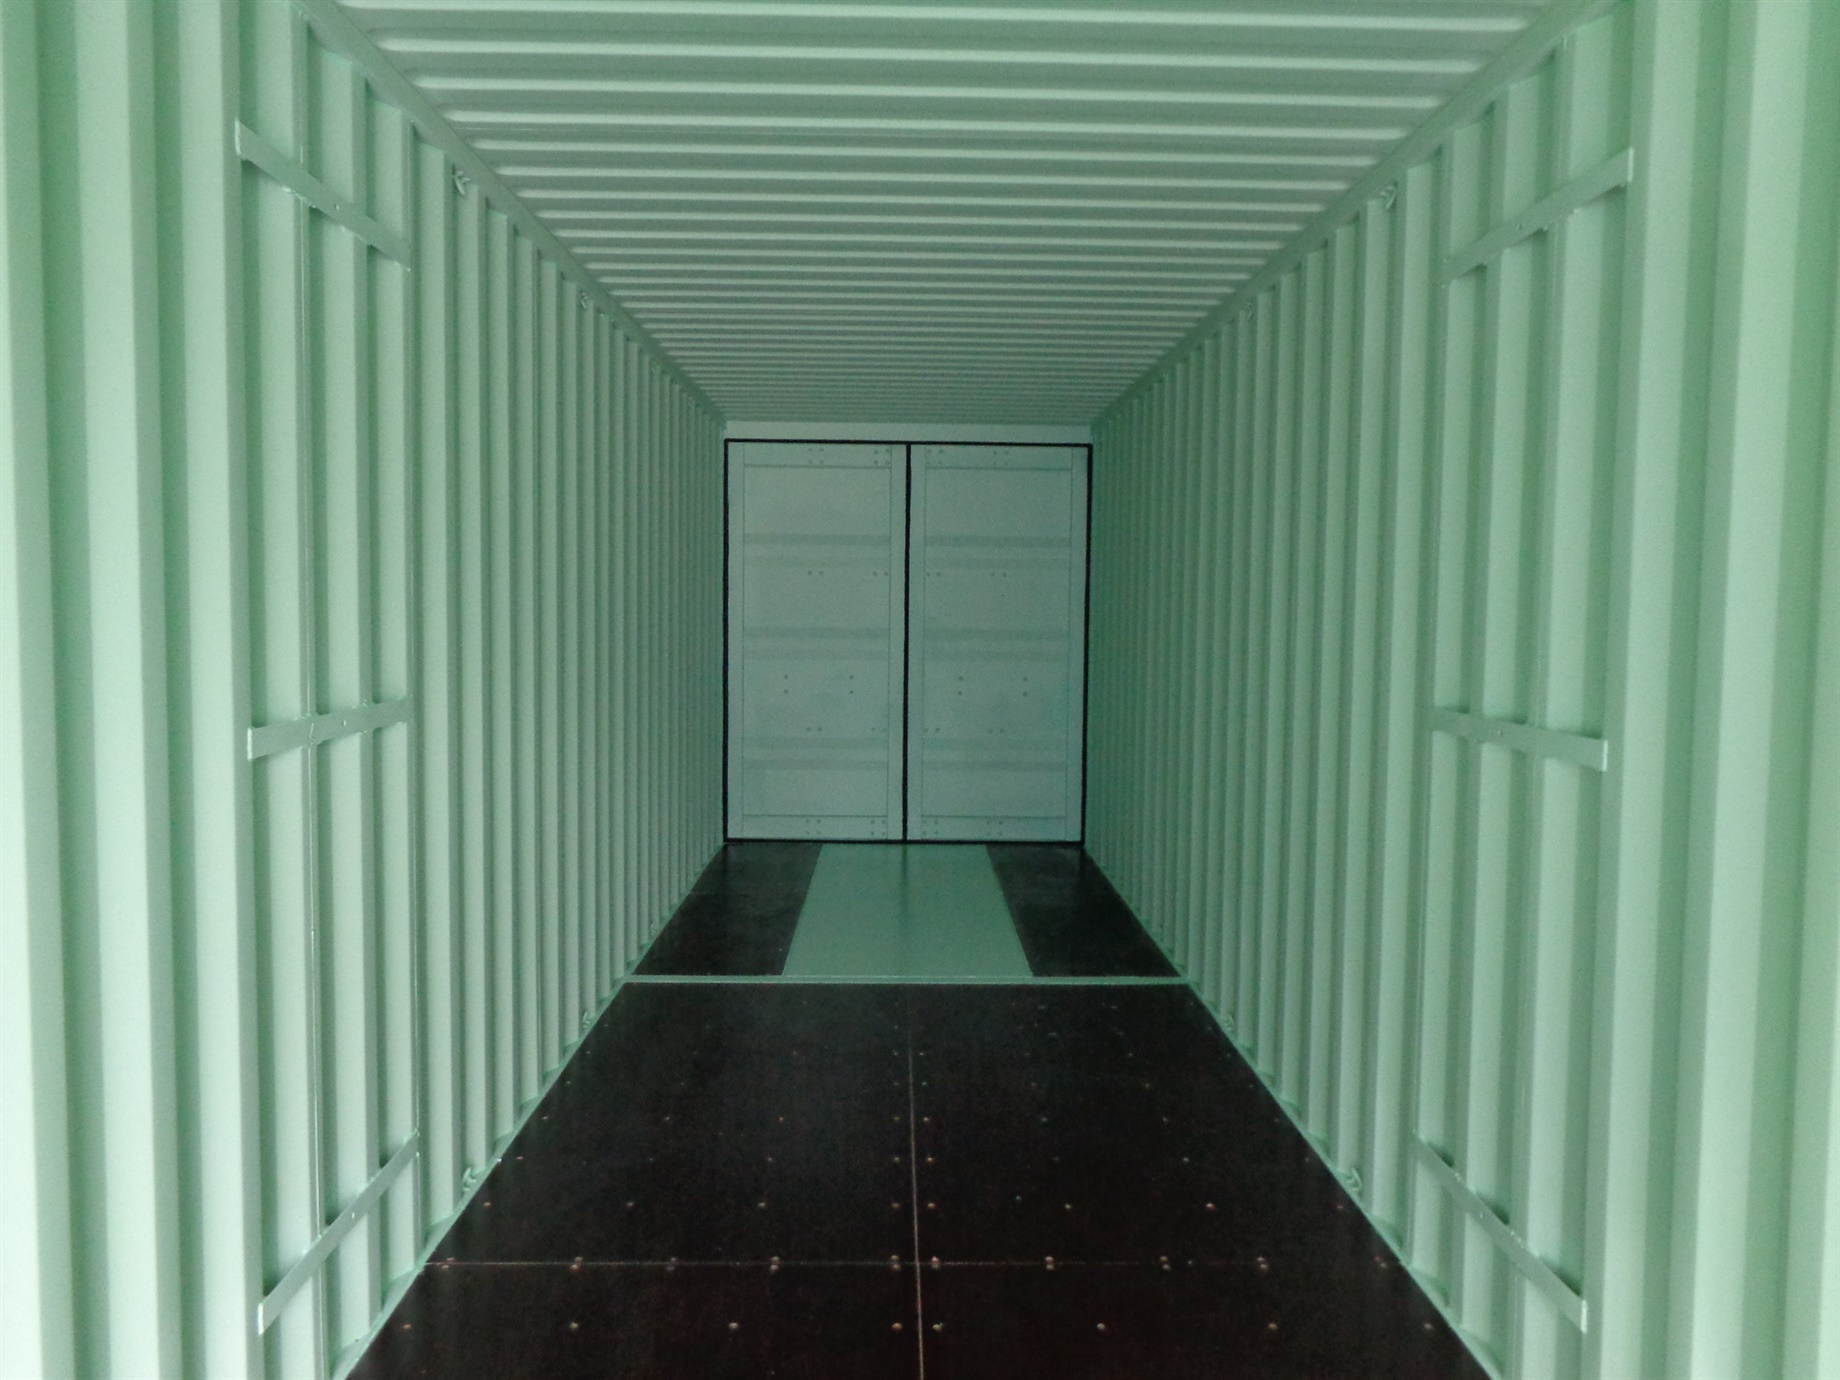 Container with doors on each end open one side 40 inside